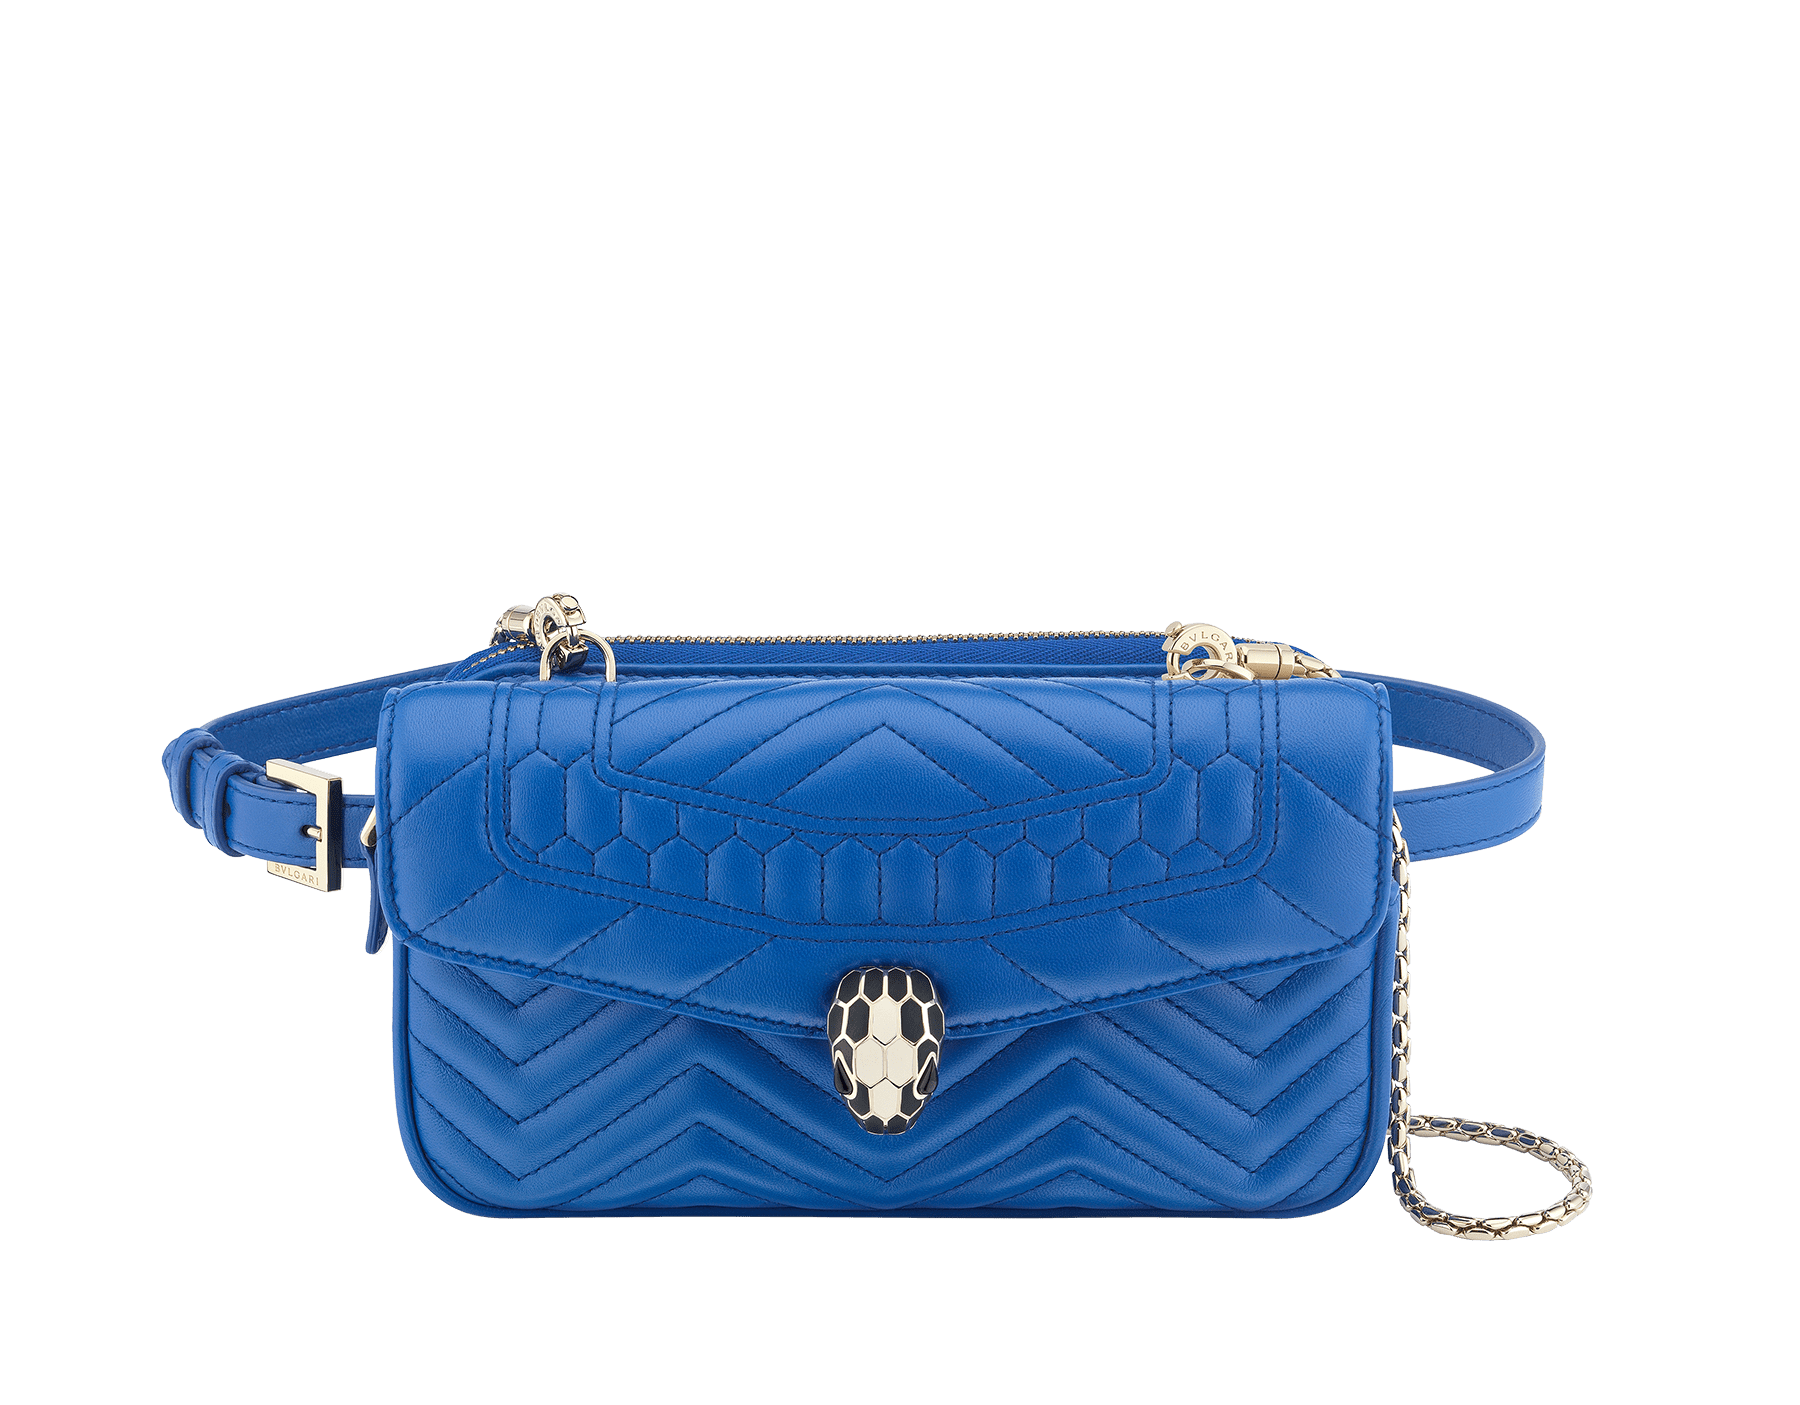 Belt Bag Serpenti Forever in cobalt tourmaline quilted chevron nappa leather. Hardware in light gold plated brass and snakehead closure in matte black and white agate enamel, with eyes in black onyx. 287851 image 1